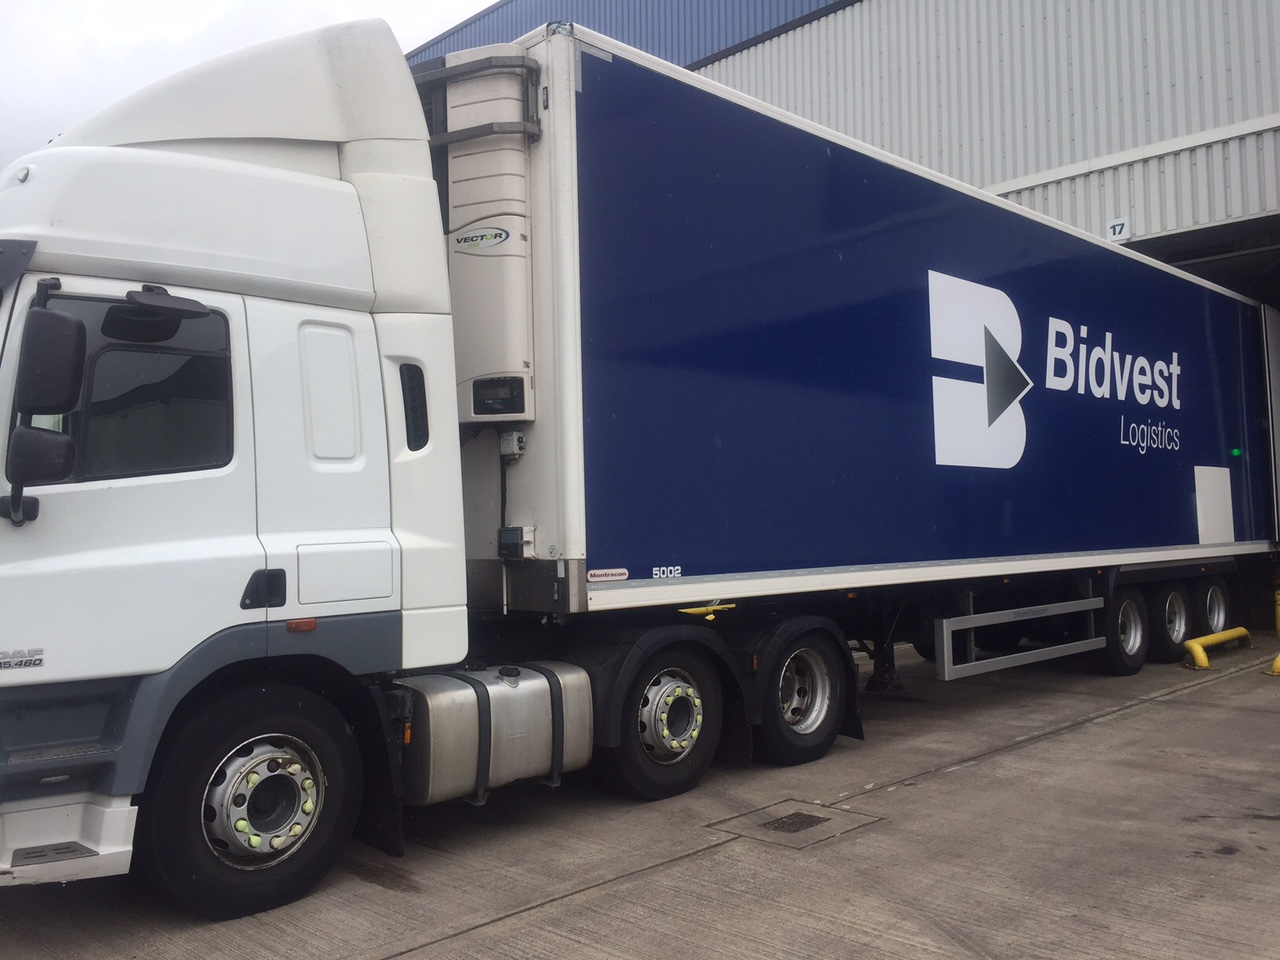 Bidvest Logistics Reports £25,000 Fuel Saving with the RTITB Master Driver CPC Consortium